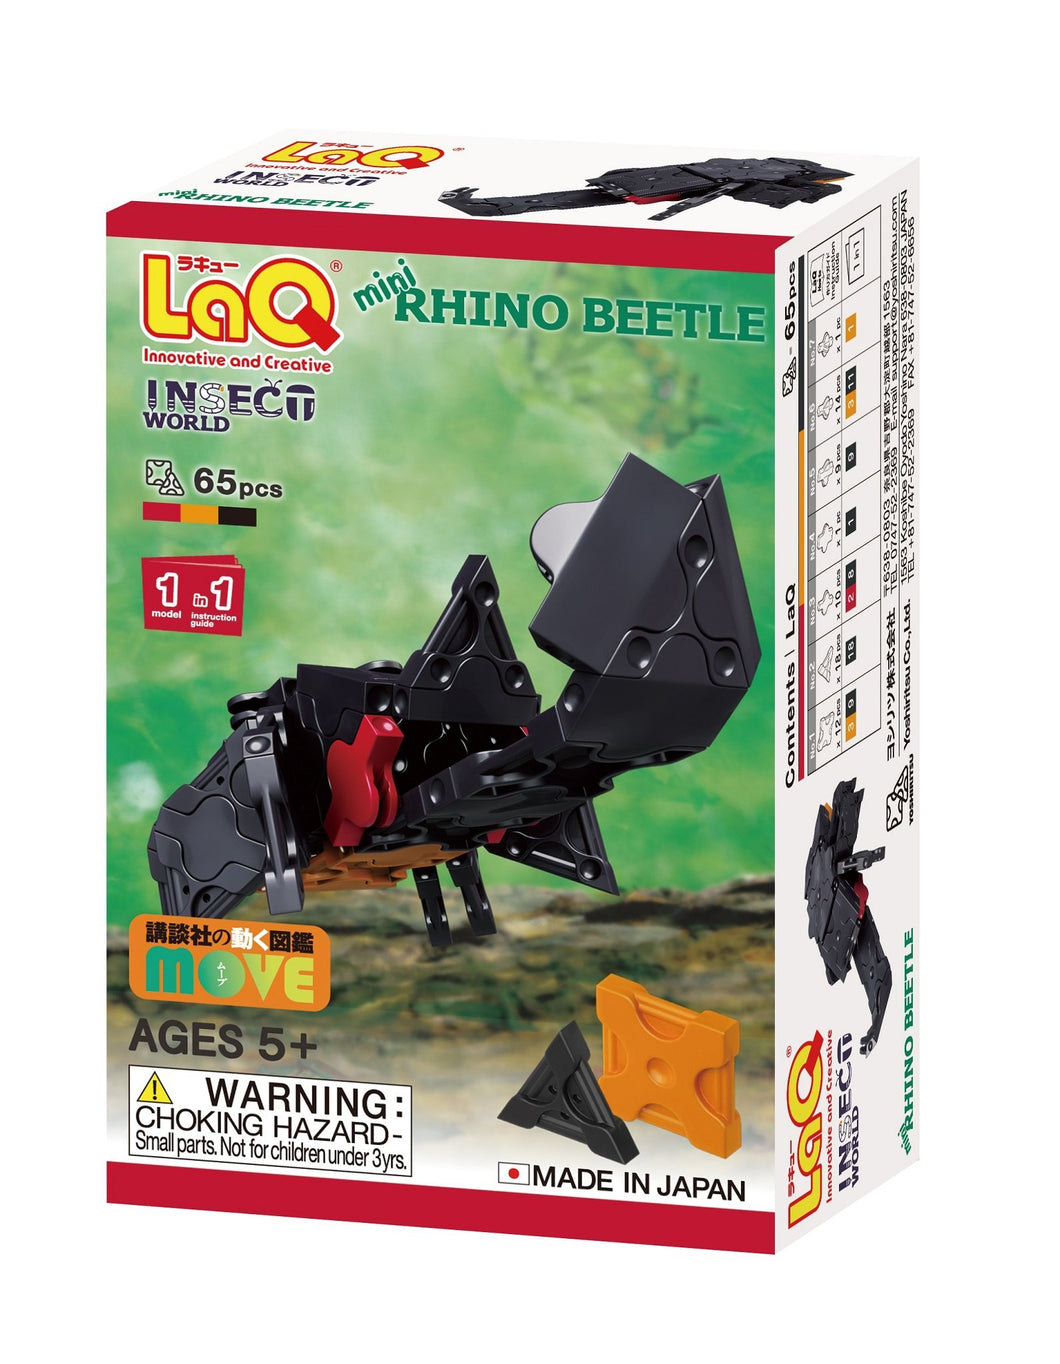 Package front view featured in the LaQ insect world mini rhino beetle set